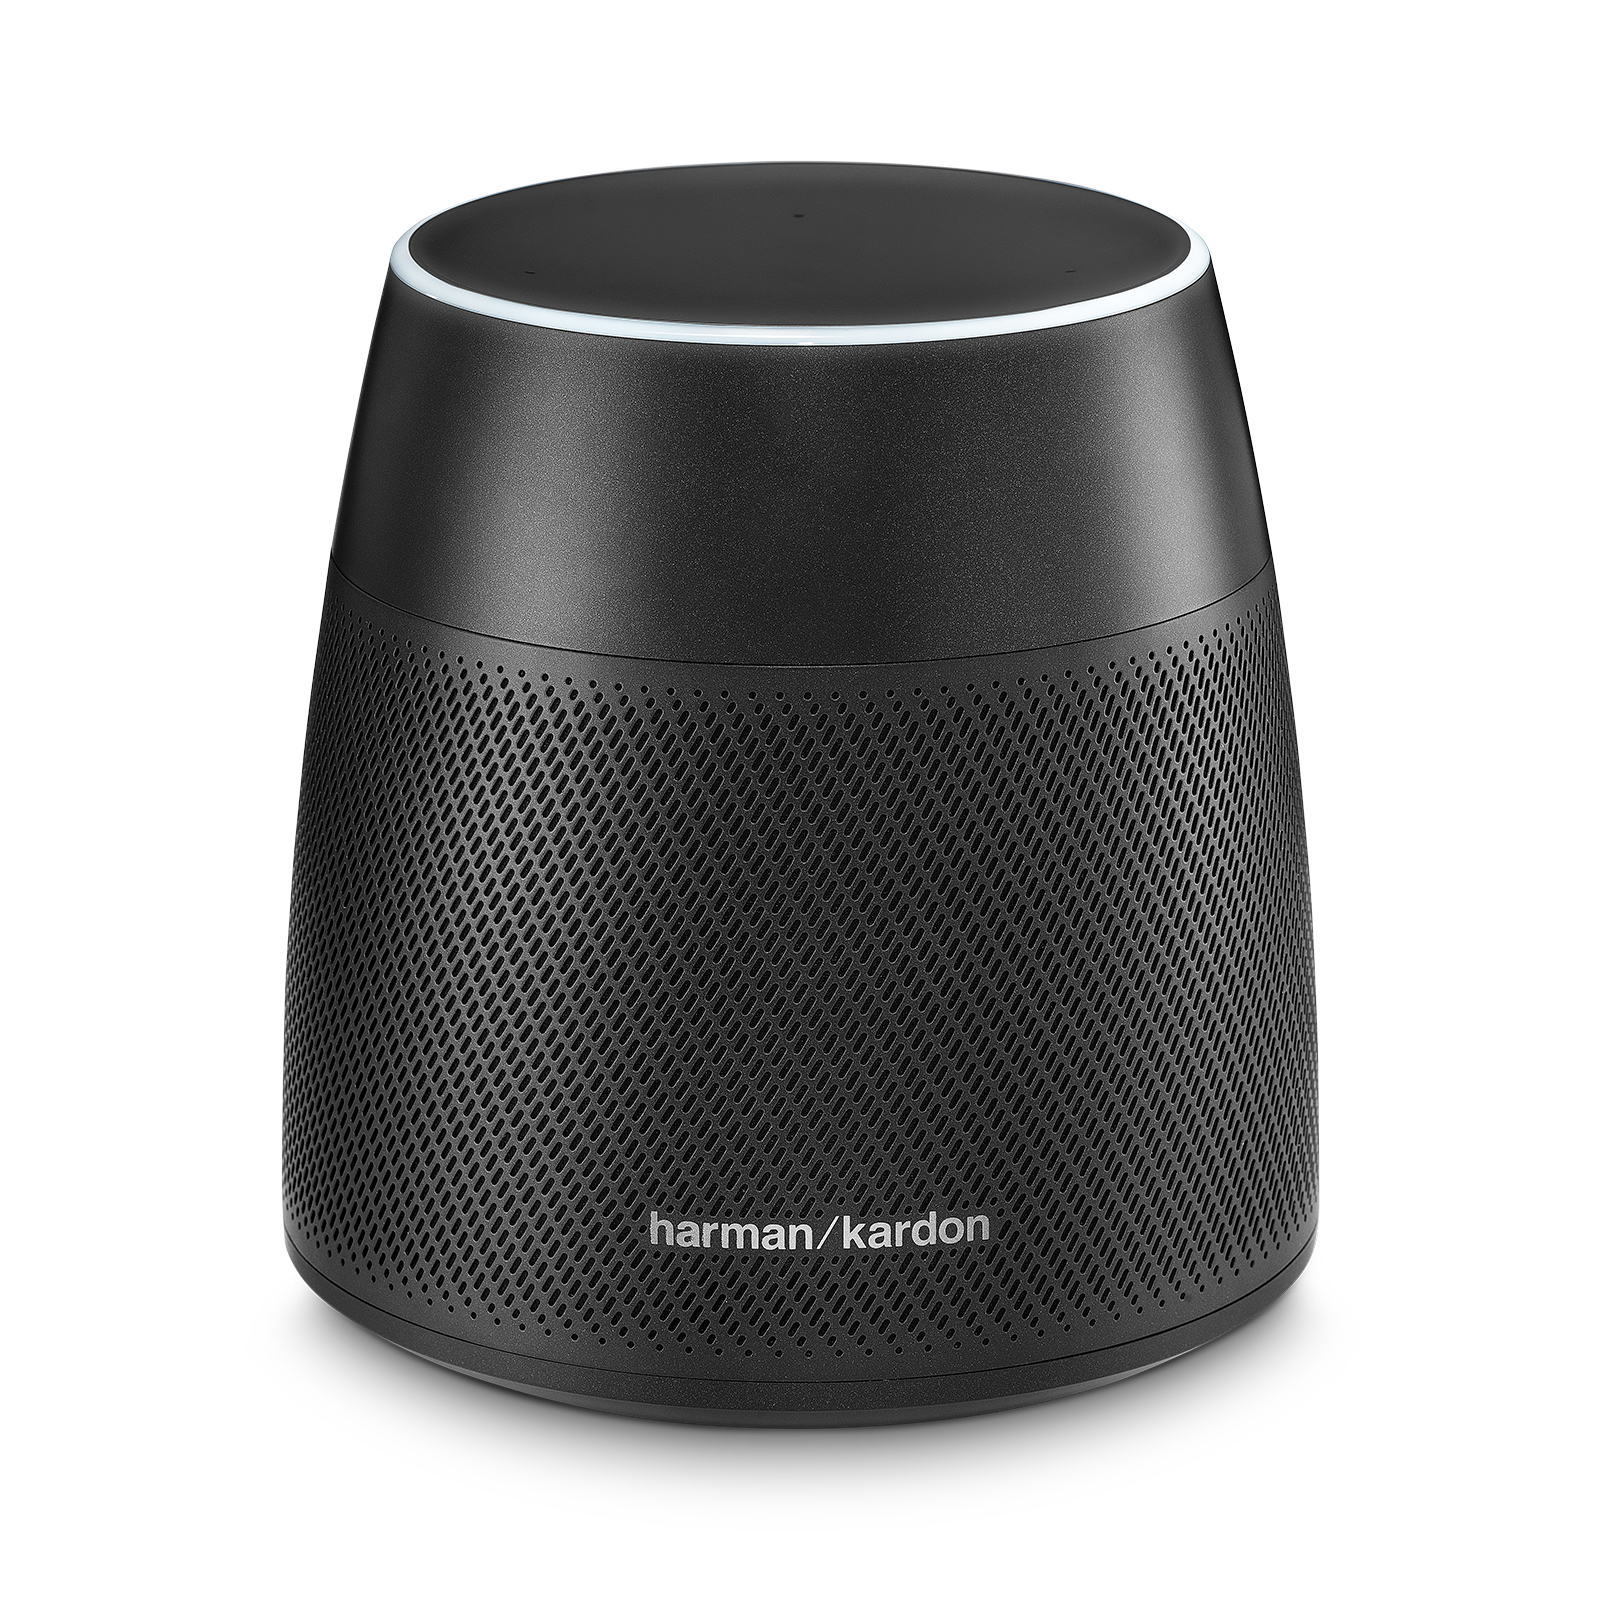 Harman Kardon Astra - Black - Voice-activated speaker - Hero